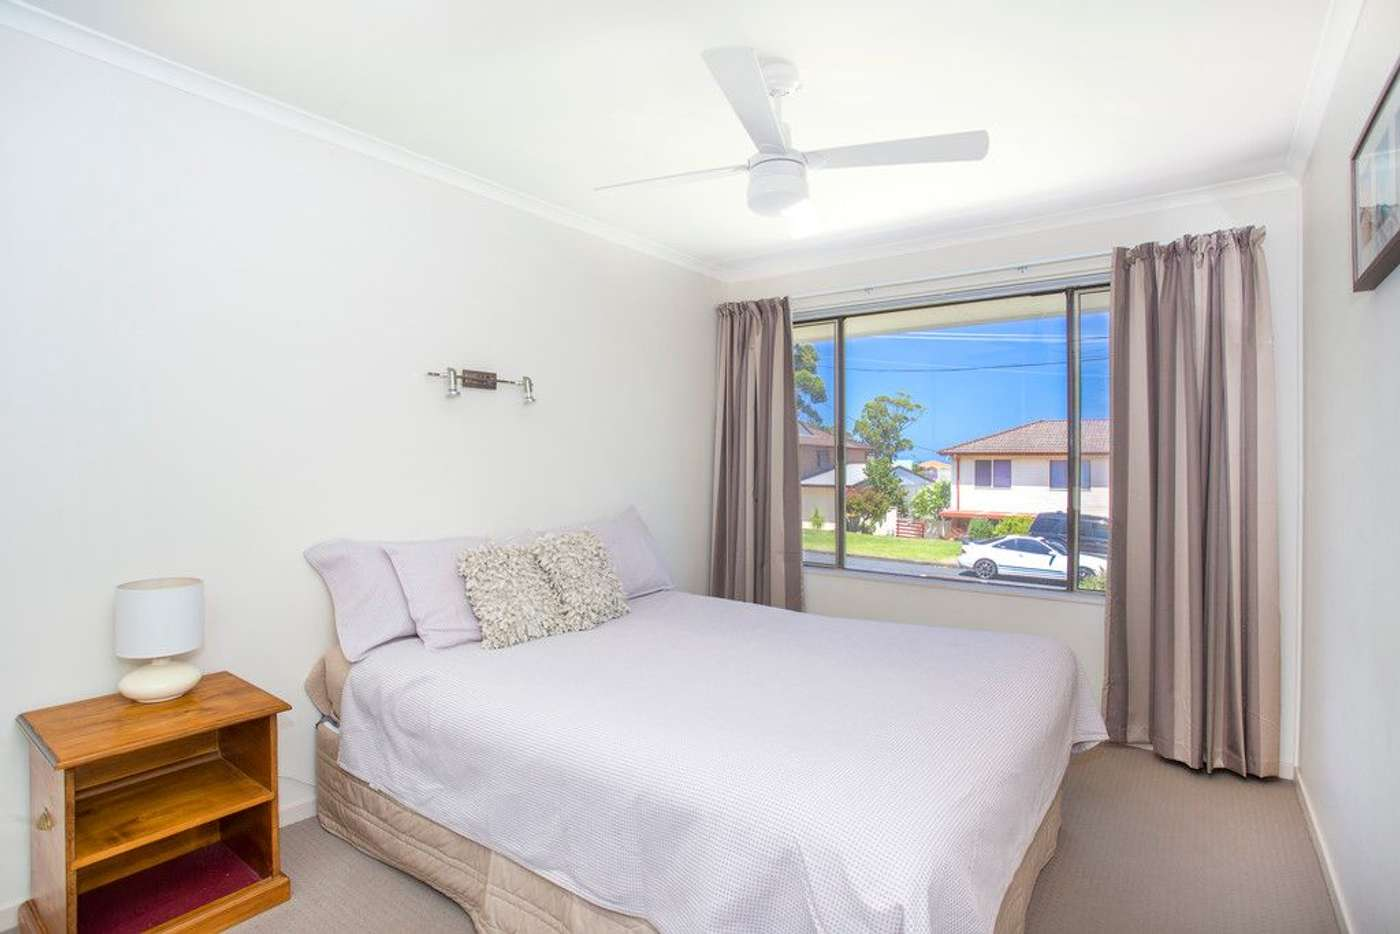 Sixth view of Homely house listing, 10 Driver Avenue, Mollymook NSW 2539